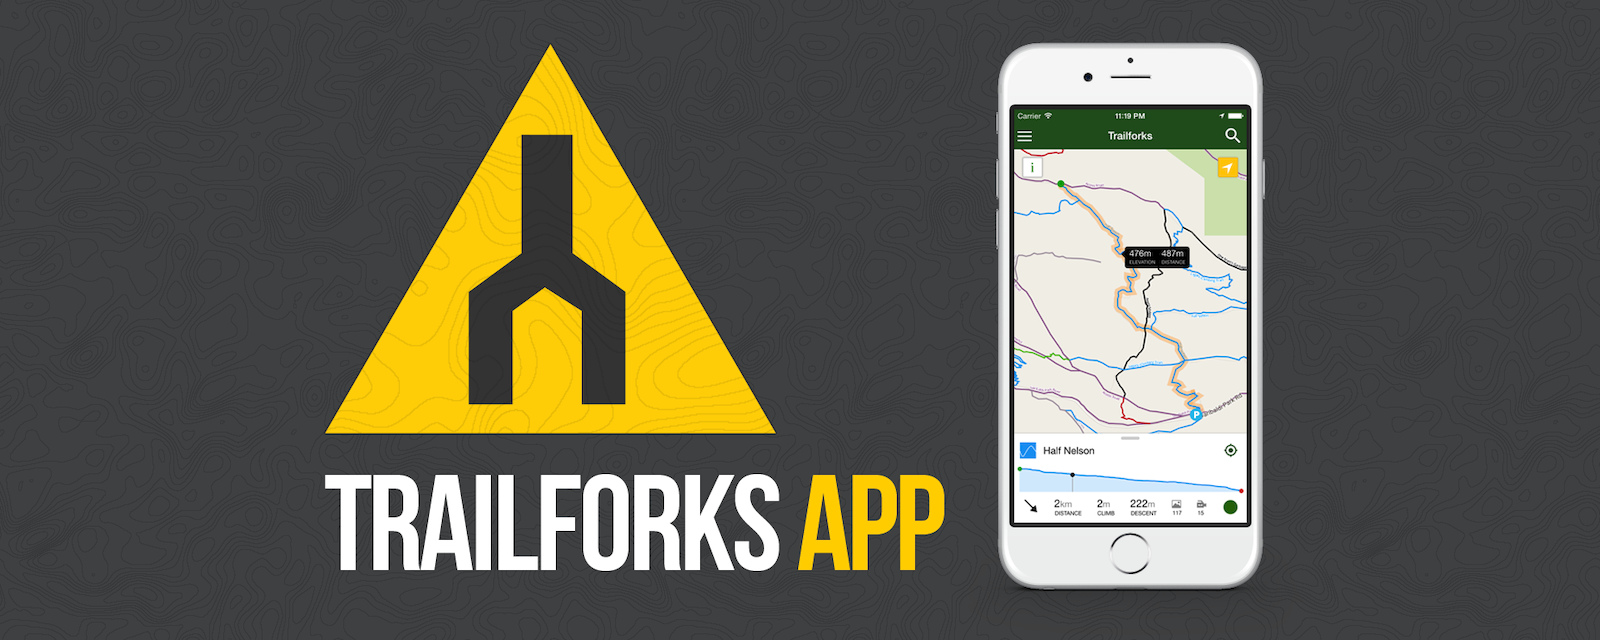 Trailforks mobile app for ios and android